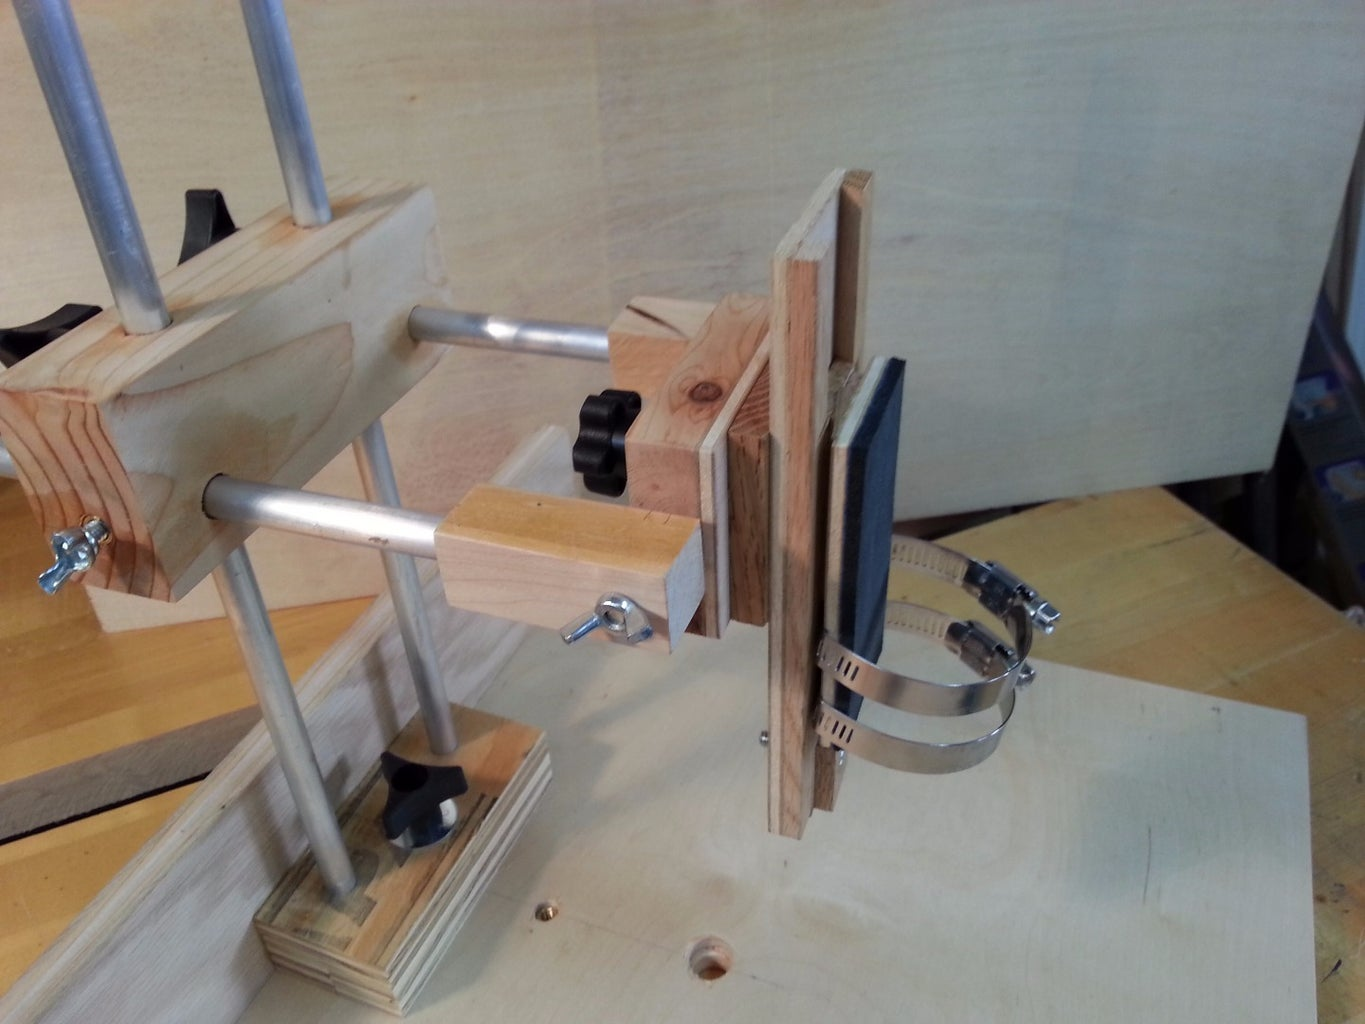 Assembly: Mounting the Tool